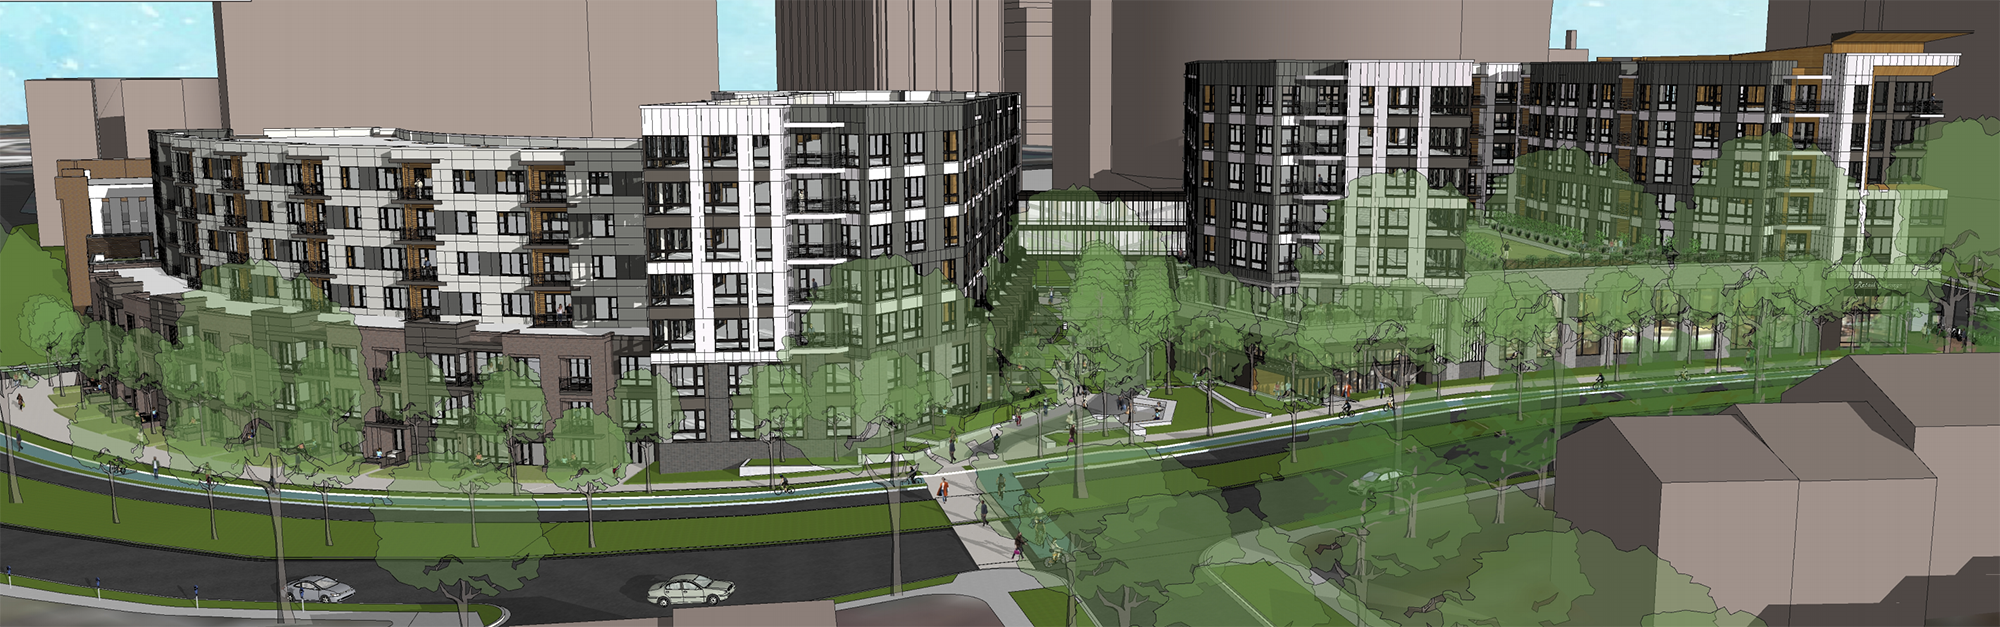 Rendering of planned mixed-use development at 8787 Georgia Aveue